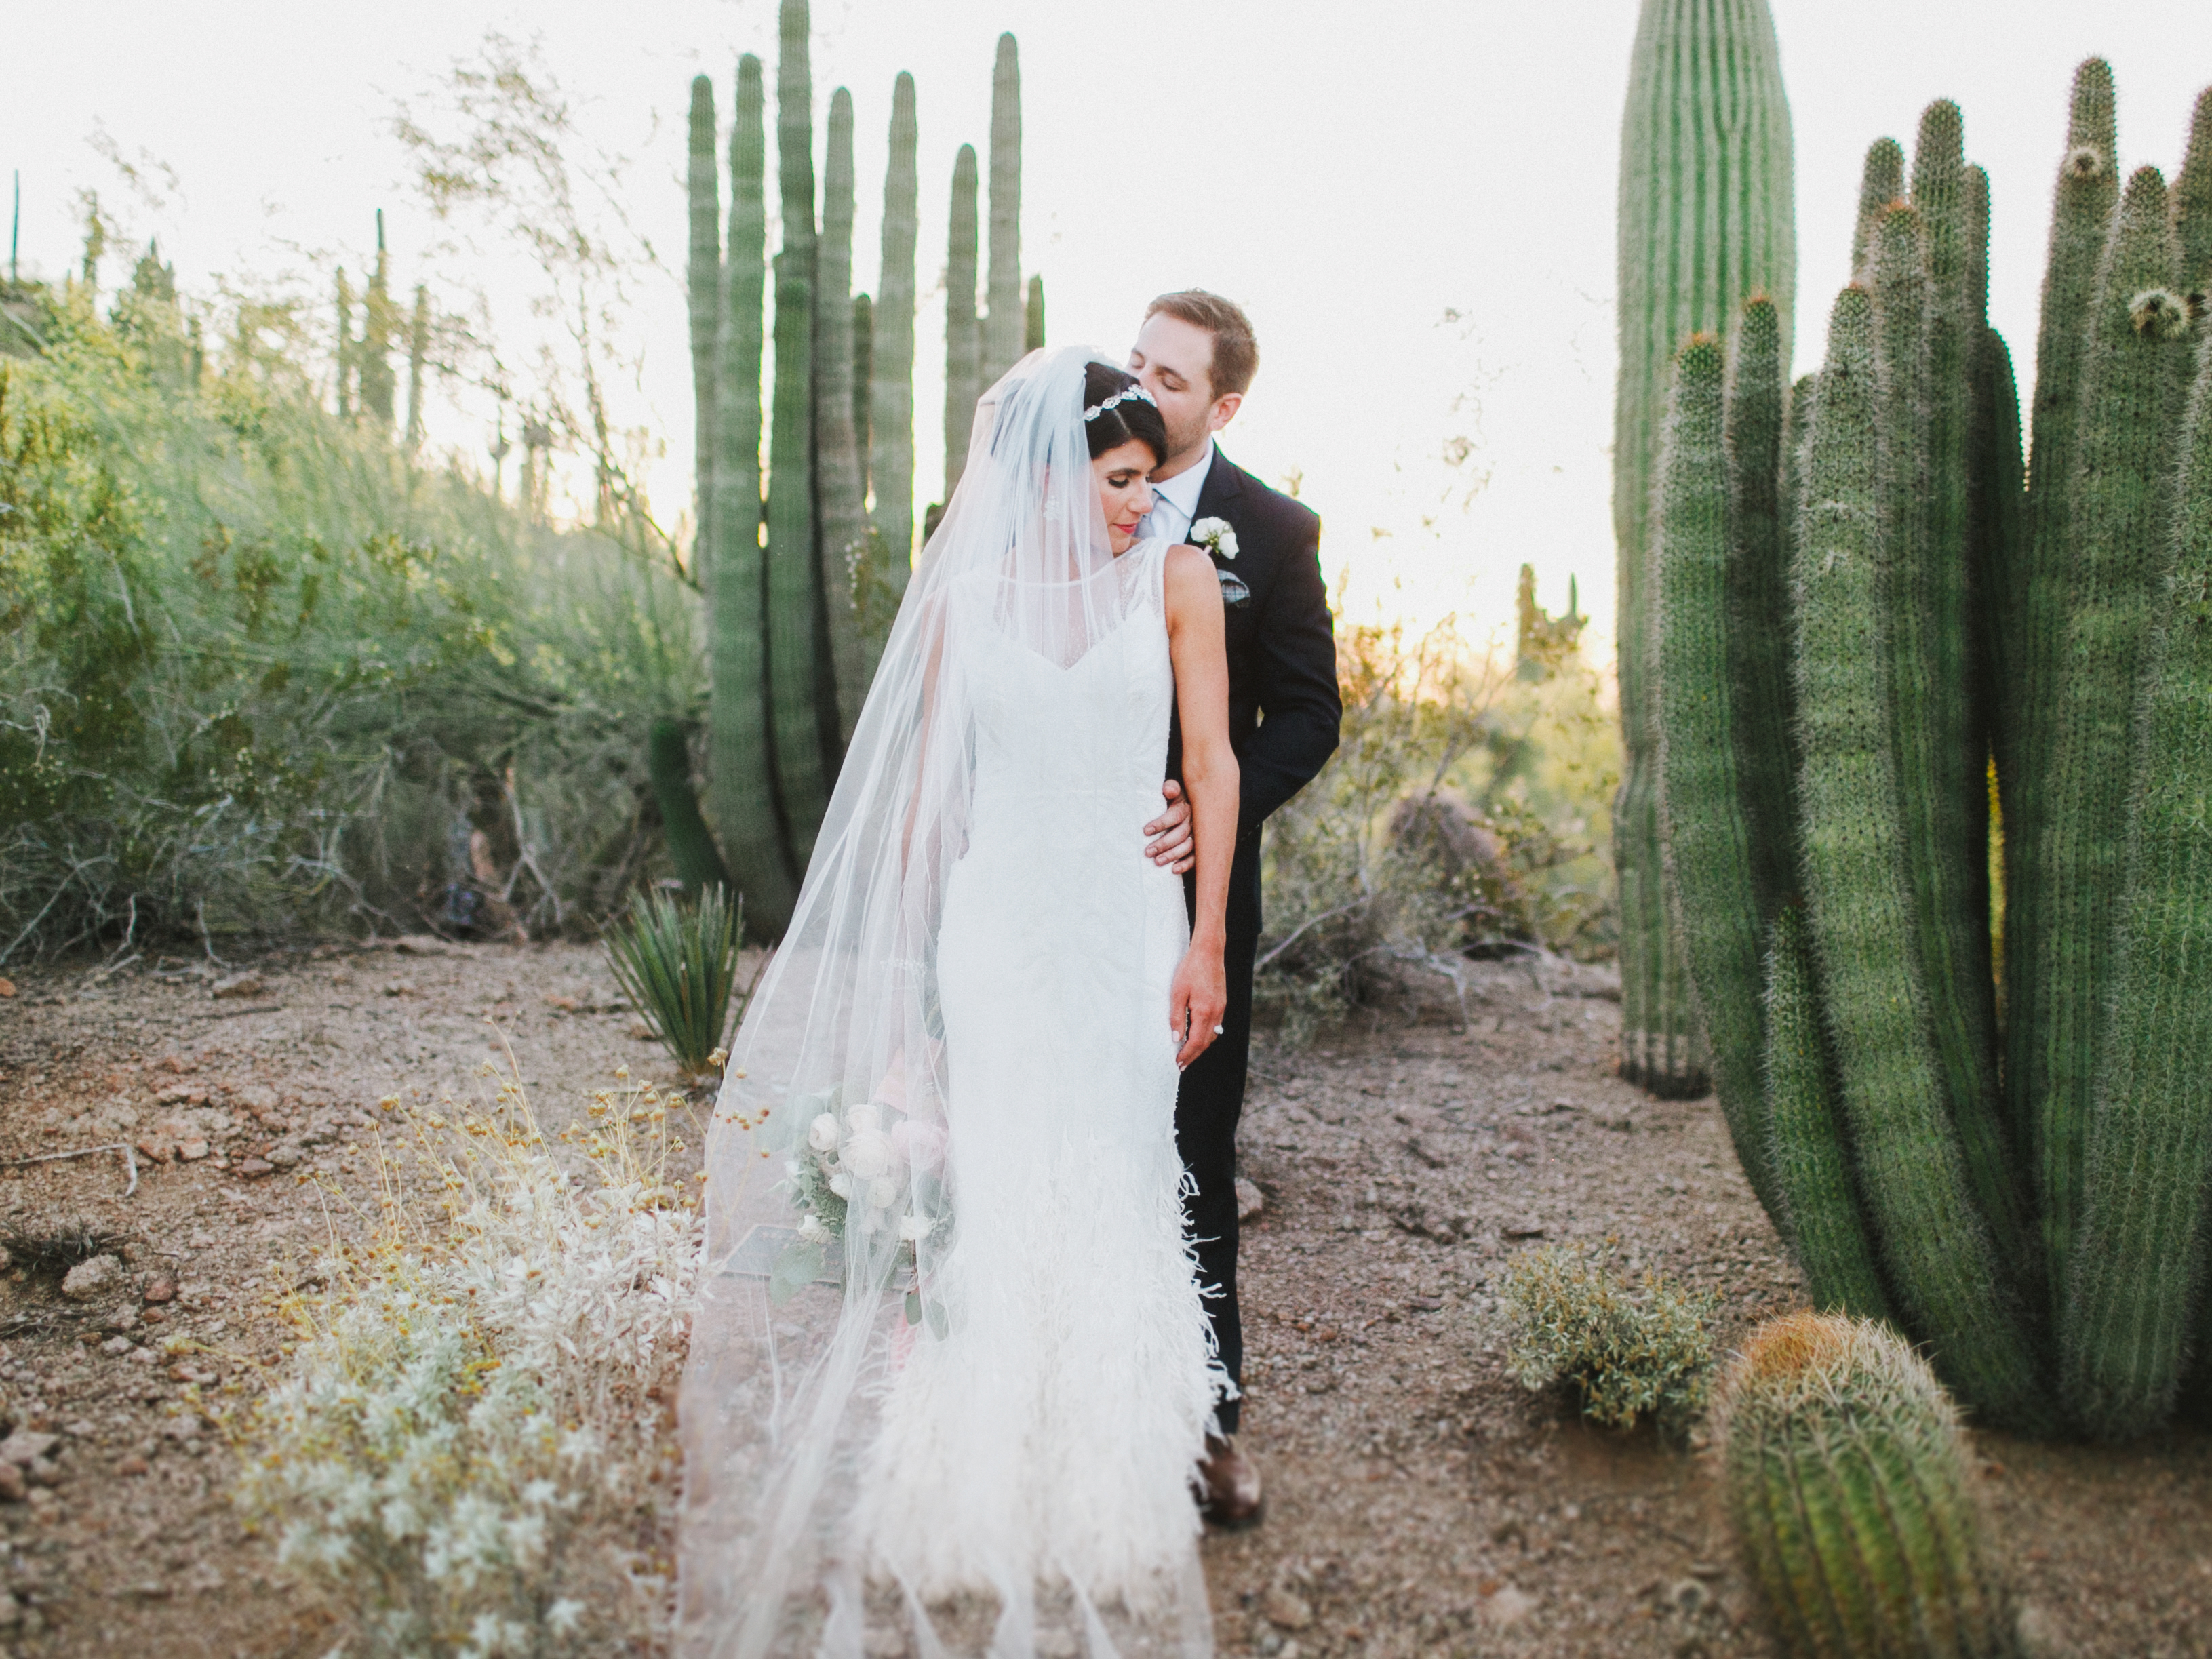 Desert Botanical Garden Wedding | Scottsdale, AZ Wedding Photographers